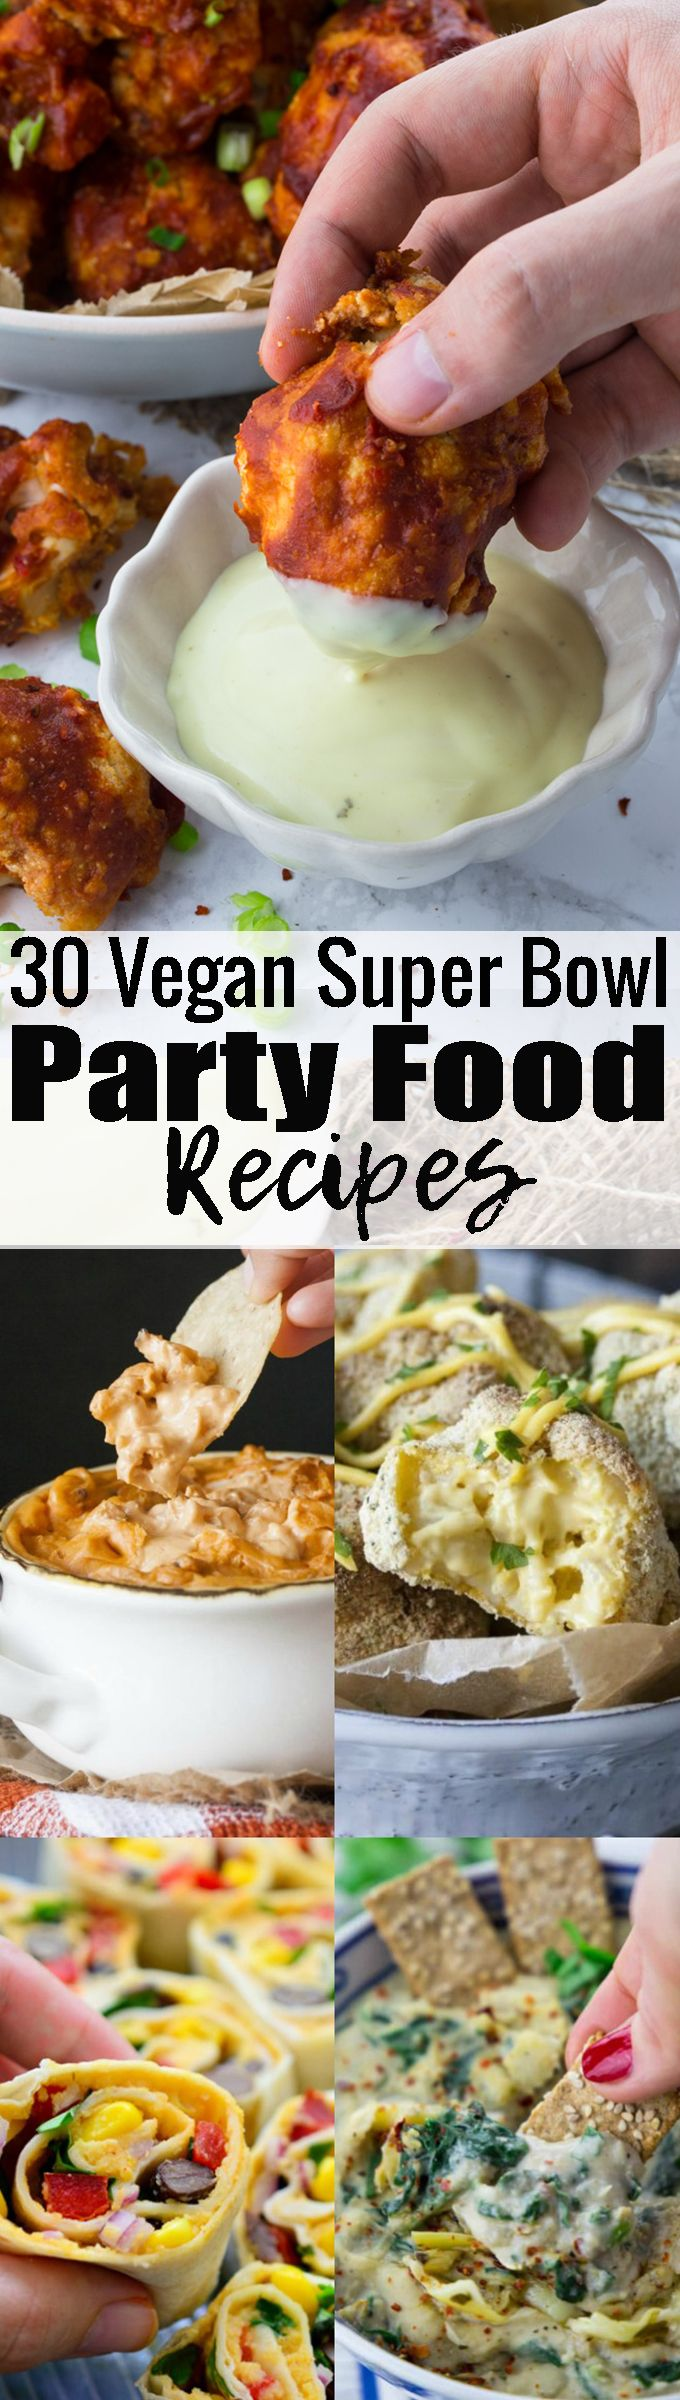 If you're looking for vegan party food recipes for the super bowl, this collection of 30 awesome party recipes is perfect for you!!